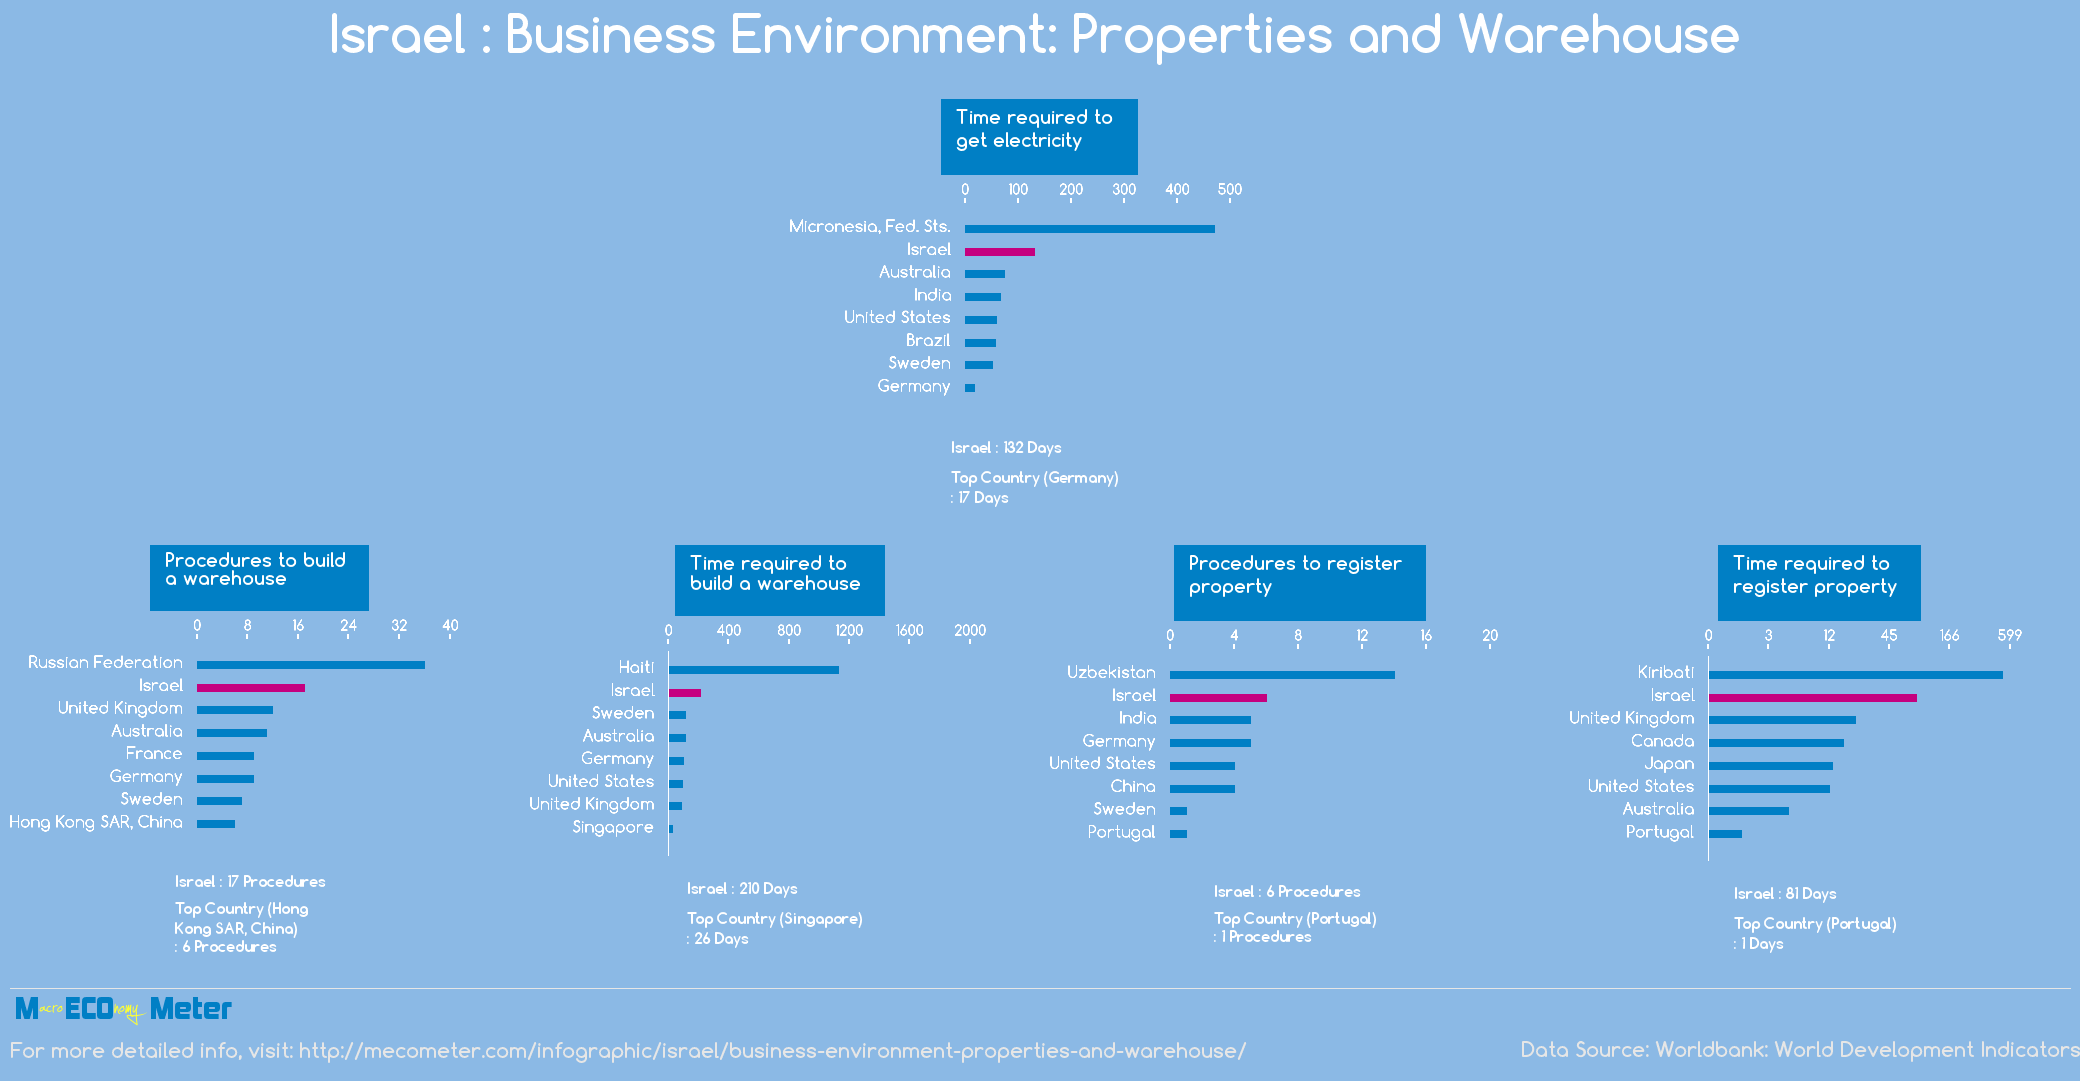 Israel : Business Environment: Properties and Warehouse